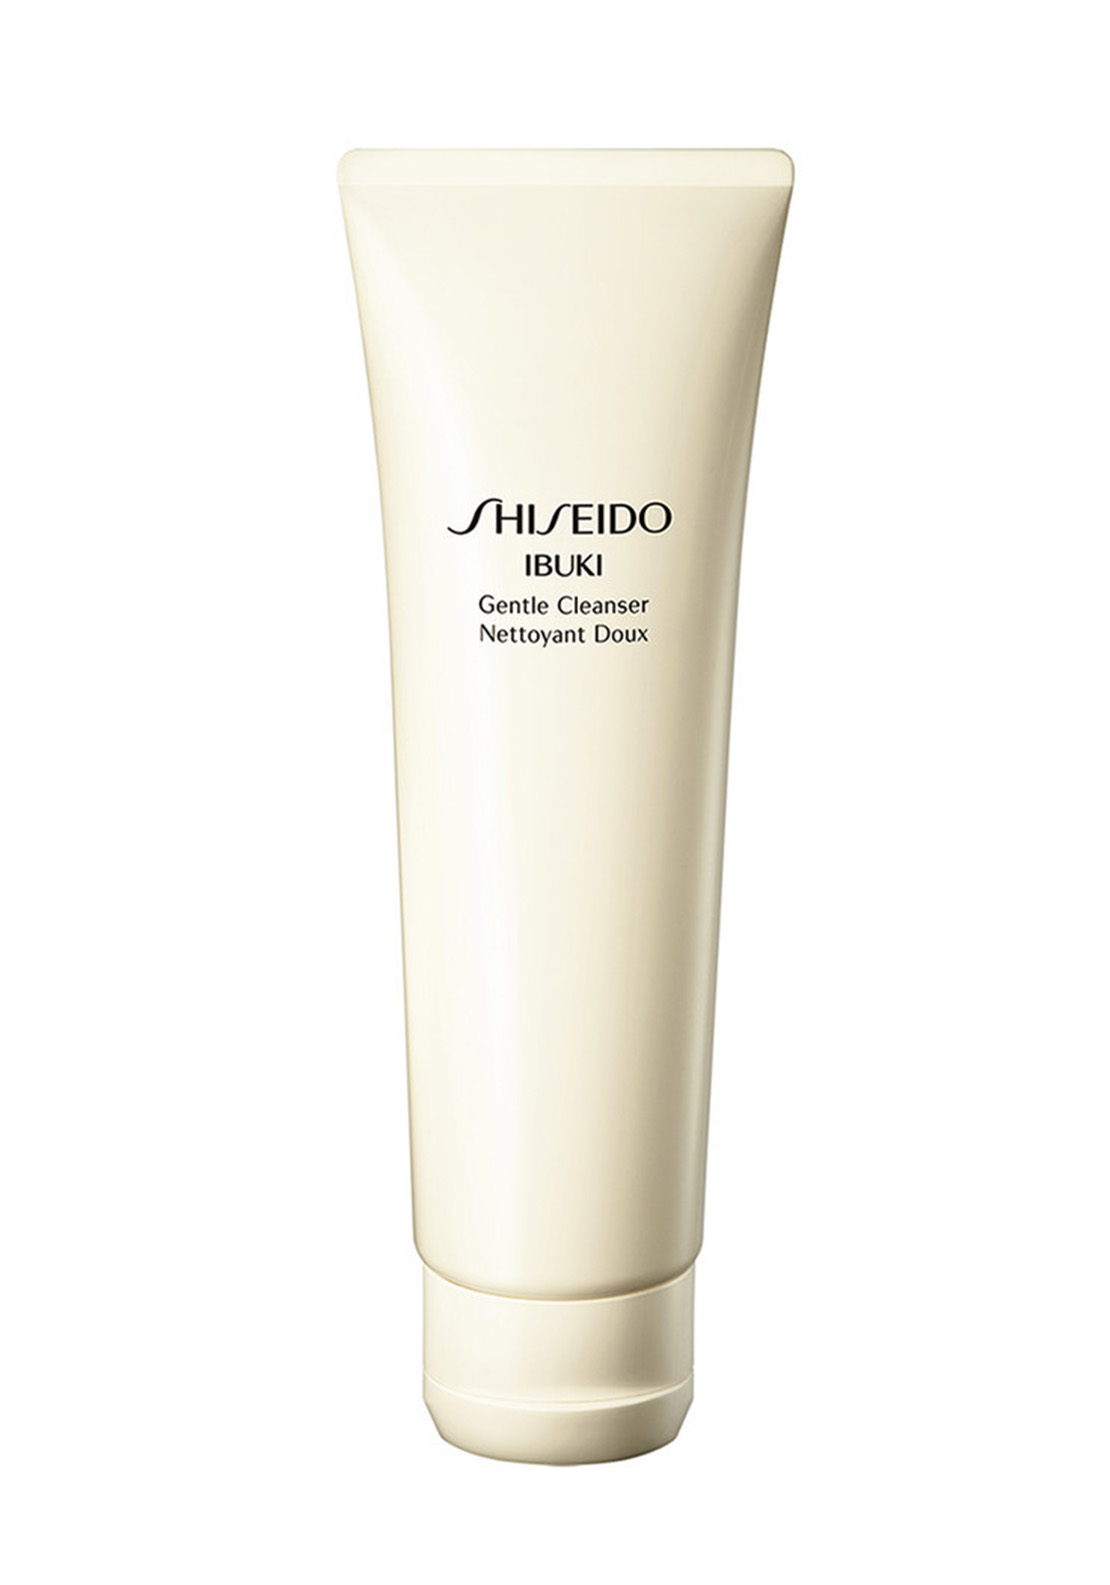 Shiseido Ibuki Gentle Cleanser (125ml)